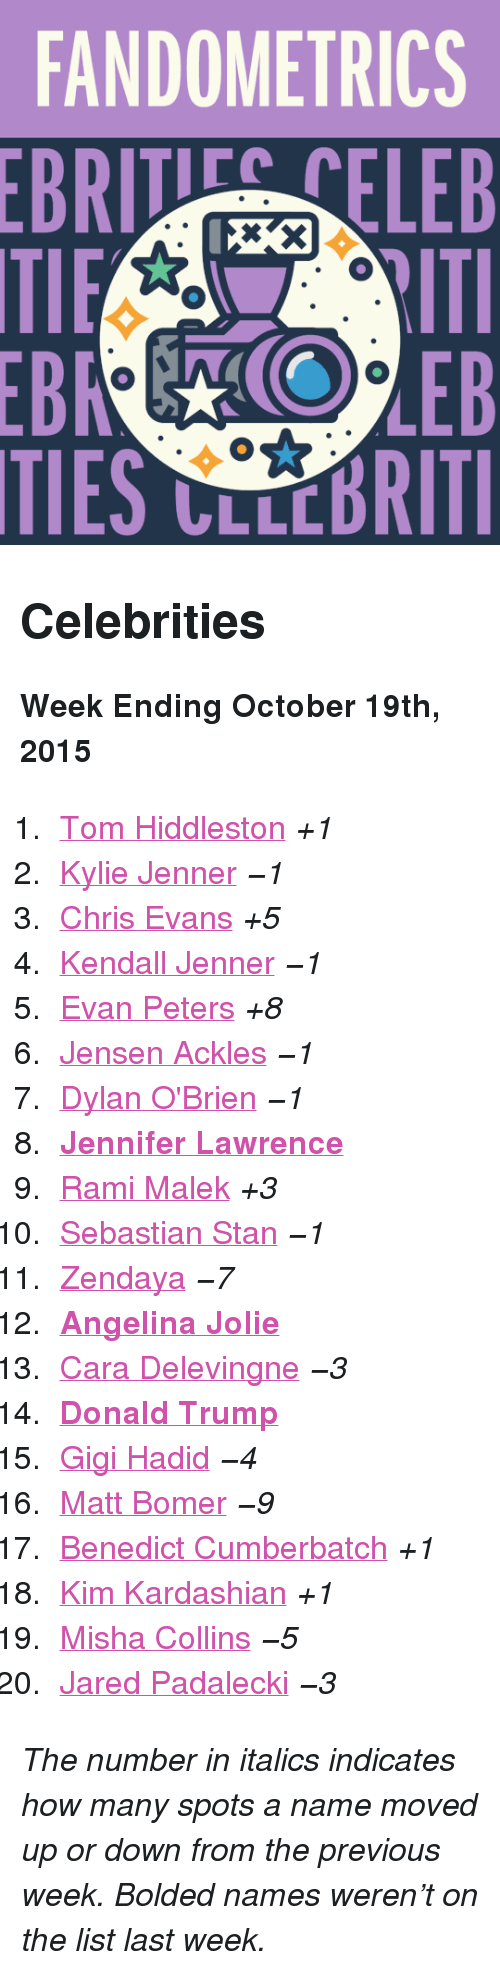 """Dylan O'Brien: FANDOMETRICS  BRTELEB  TIES CLLCBRITI <h2>Celebrities</h2><p><b>Week Ending October 19th, 2015</b></p><ol><li><a href=""""http://www.tumblr.com/search/tom%20hiddleston"""">Tom Hiddleston</a><i>+1</i></li>  <li><a href=""""http://www.tumblr.com/search/kylie%20jenner"""">Kylie Jenner</a><i>−1</i></li>  <li><a href=""""http://www.tumblr.com/search/chris%20evans"""">Chris Evans</a><i>+5</i></li>  <li><a href=""""http://www.tumblr.com/search/kendall%20jenner"""">Kendall Jenner</a><i>−1</i></li>  <li><a href=""""http://www.tumblr.com/search/evan%20peters"""">Evan Peters</a><i>+8</i></li>  <li><a href=""""http://www.tumblr.com/search/jensen%20ackles"""">Jensen Ackles</a><i>−1</i></li>  <li><a href=""""http://www.tumblr.com/search/dylan%20o'brien"""">Dylan O'Brien</a><i>−1</i></li>  <li><a href=""""http://www.tumblr.com/search/jennifer%20lawrence""""><b>Jennifer Lawrence</b></a></li>  <li><a href=""""http://www.tumblr.com/search/rami%20malek"""">Rami Malek</a><i>+3</i></li>  <li><a href=""""http://www.tumblr.com/search/sebastian%20stan"""">Sebastian Stan</a><i>−1</i></li>  <li><a href=""""http://www.tumblr.com/search/zendaya"""">Zendaya</a><i>−7</i></li>  <li><a href=""""http://www.tumblr.com/search/angelina%20jolie""""><b>Angelina Jolie</b></a></li>  <li><a href=""""http://www.tumblr.com/search/cara%20delevingne"""">Cara Delevingne</a><i>−3</i></li>  <li><a href=""""http://www.tumblr.com/search/donald%20trump""""><b>Donald Trump</b></a></li>  <li><a href=""""http://www.tumblr.com/search/gigi%20hadid"""">Gigi Hadid</a><i>−4</i></li>  <li><a href=""""http://www.tumblr.com/search/matt%20bomer"""">Matt Bomer</a><i>−9</i></li>  <li><a href=""""http://www.tumblr.com/search/benedict%20cumberbatch"""">Benedict Cumberbatch</a><i>+1</i></li>  <li><a href=""""http://www.tumblr.com/search/kim%20kardashian"""">Kim Kardashian</a><i>+1</i></li>  <li><a href=""""http://www.tumblr.com/search/misha%20collins"""">Misha Collins</a><i>−5</i></li>  <li><a href=""""http://www.tumblr.com/search/jared%20padalecki"""">Jared Padalecki</a><i>−3</i></li></ol><p><i>The number in italics indicates how many"""